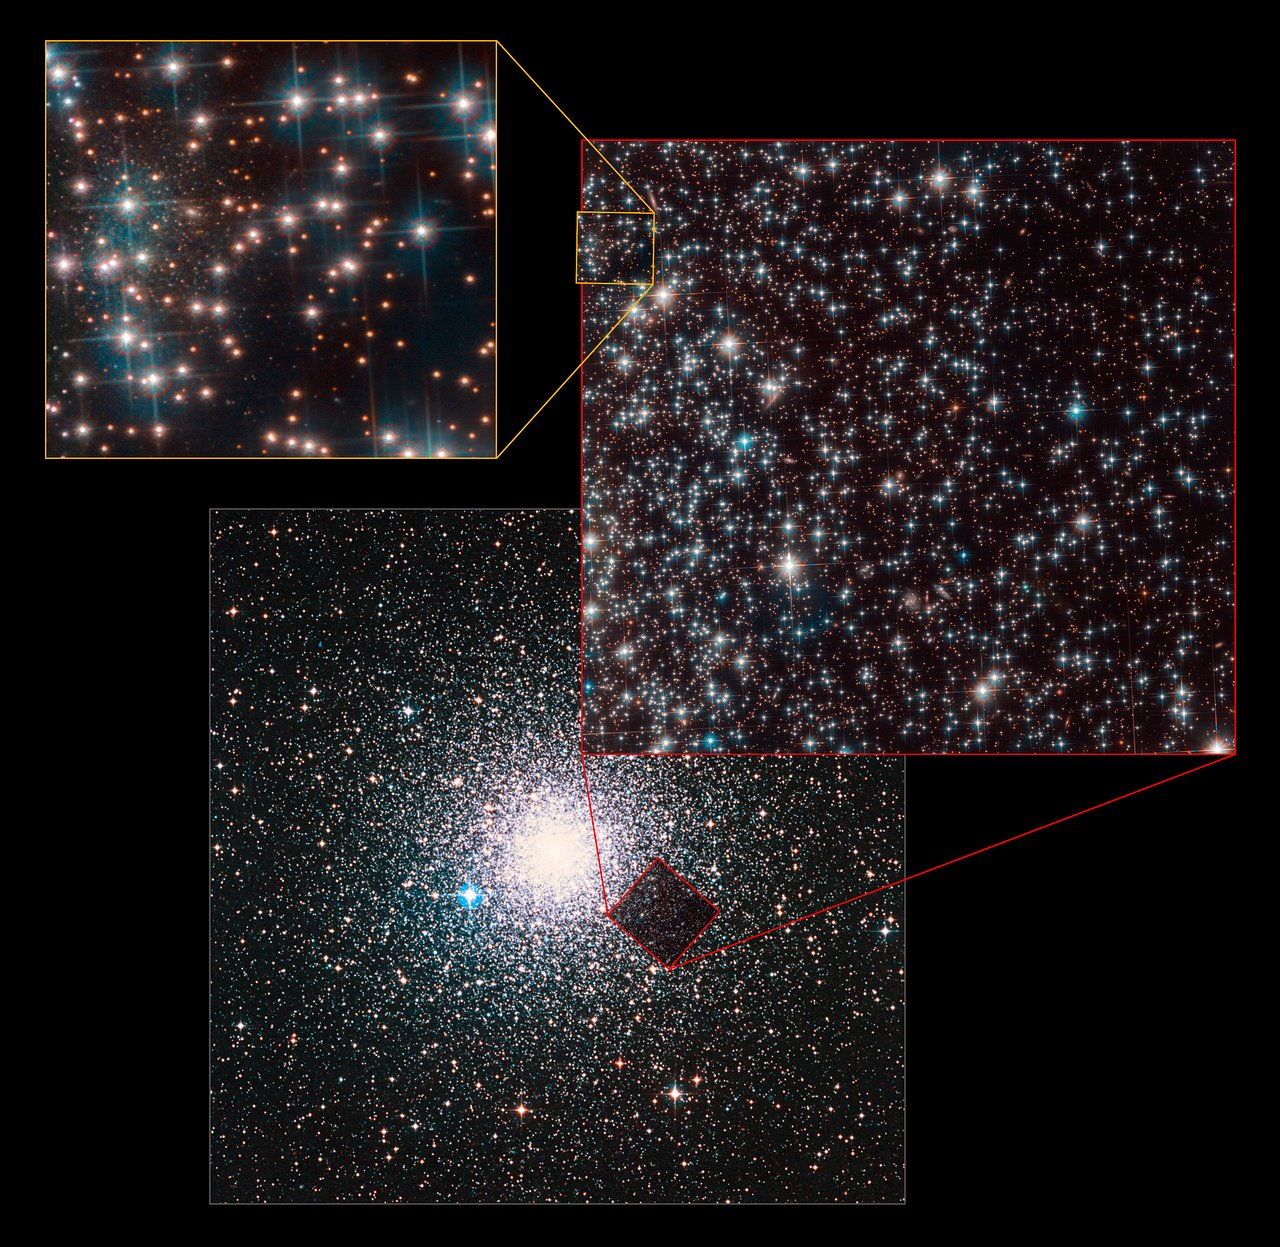 Astronomers discover new dwarf galaxy using Hubble Space Telescope